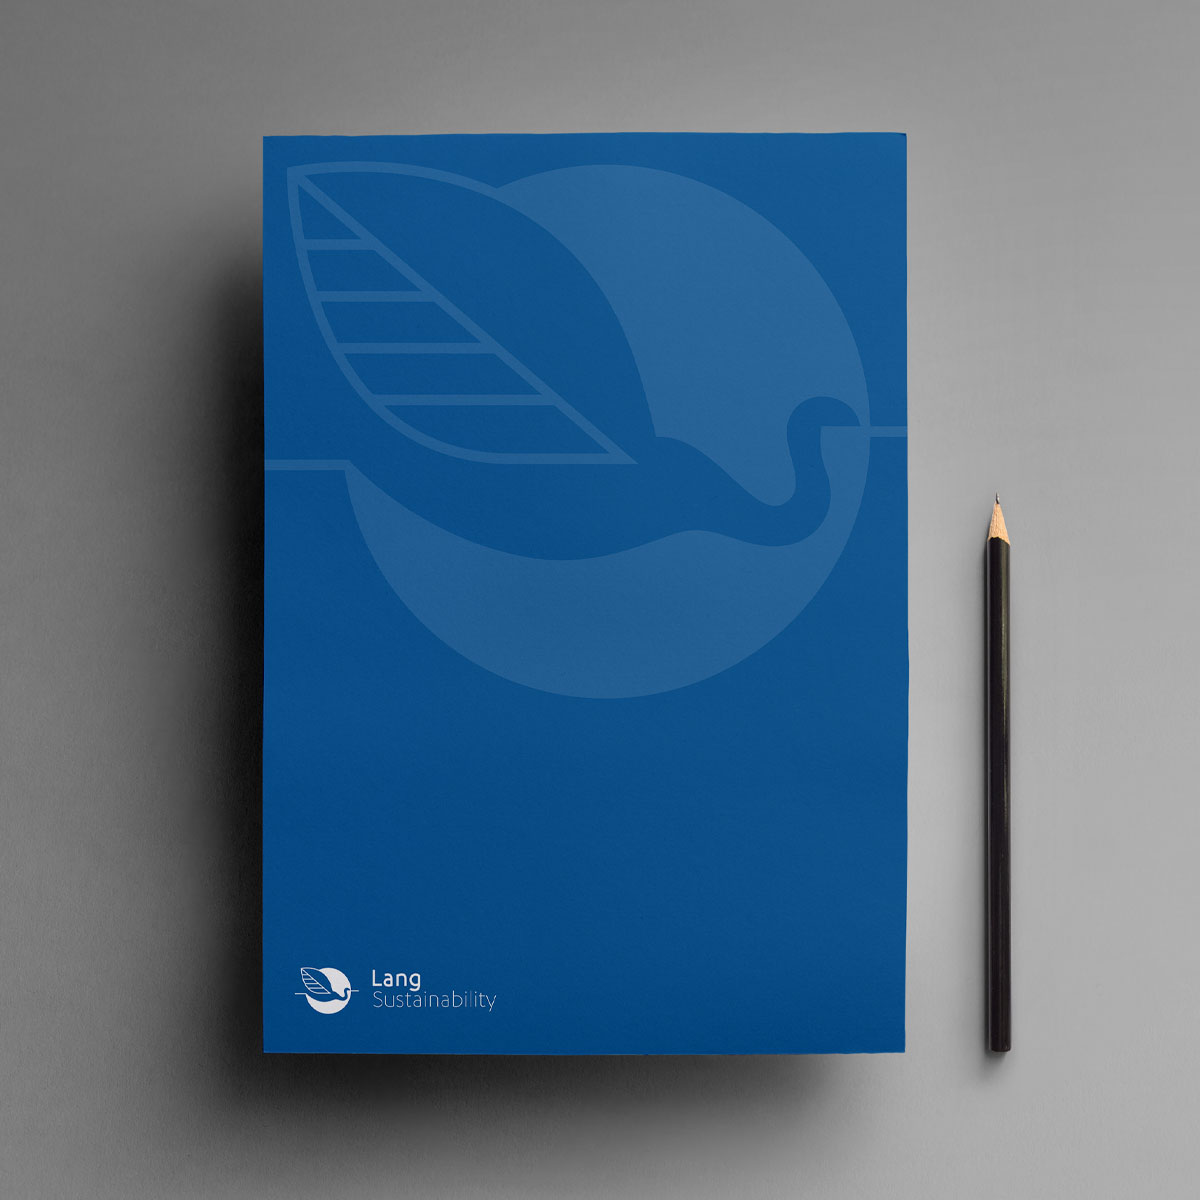 jfm-creatives-lang-sustainability-report-cover